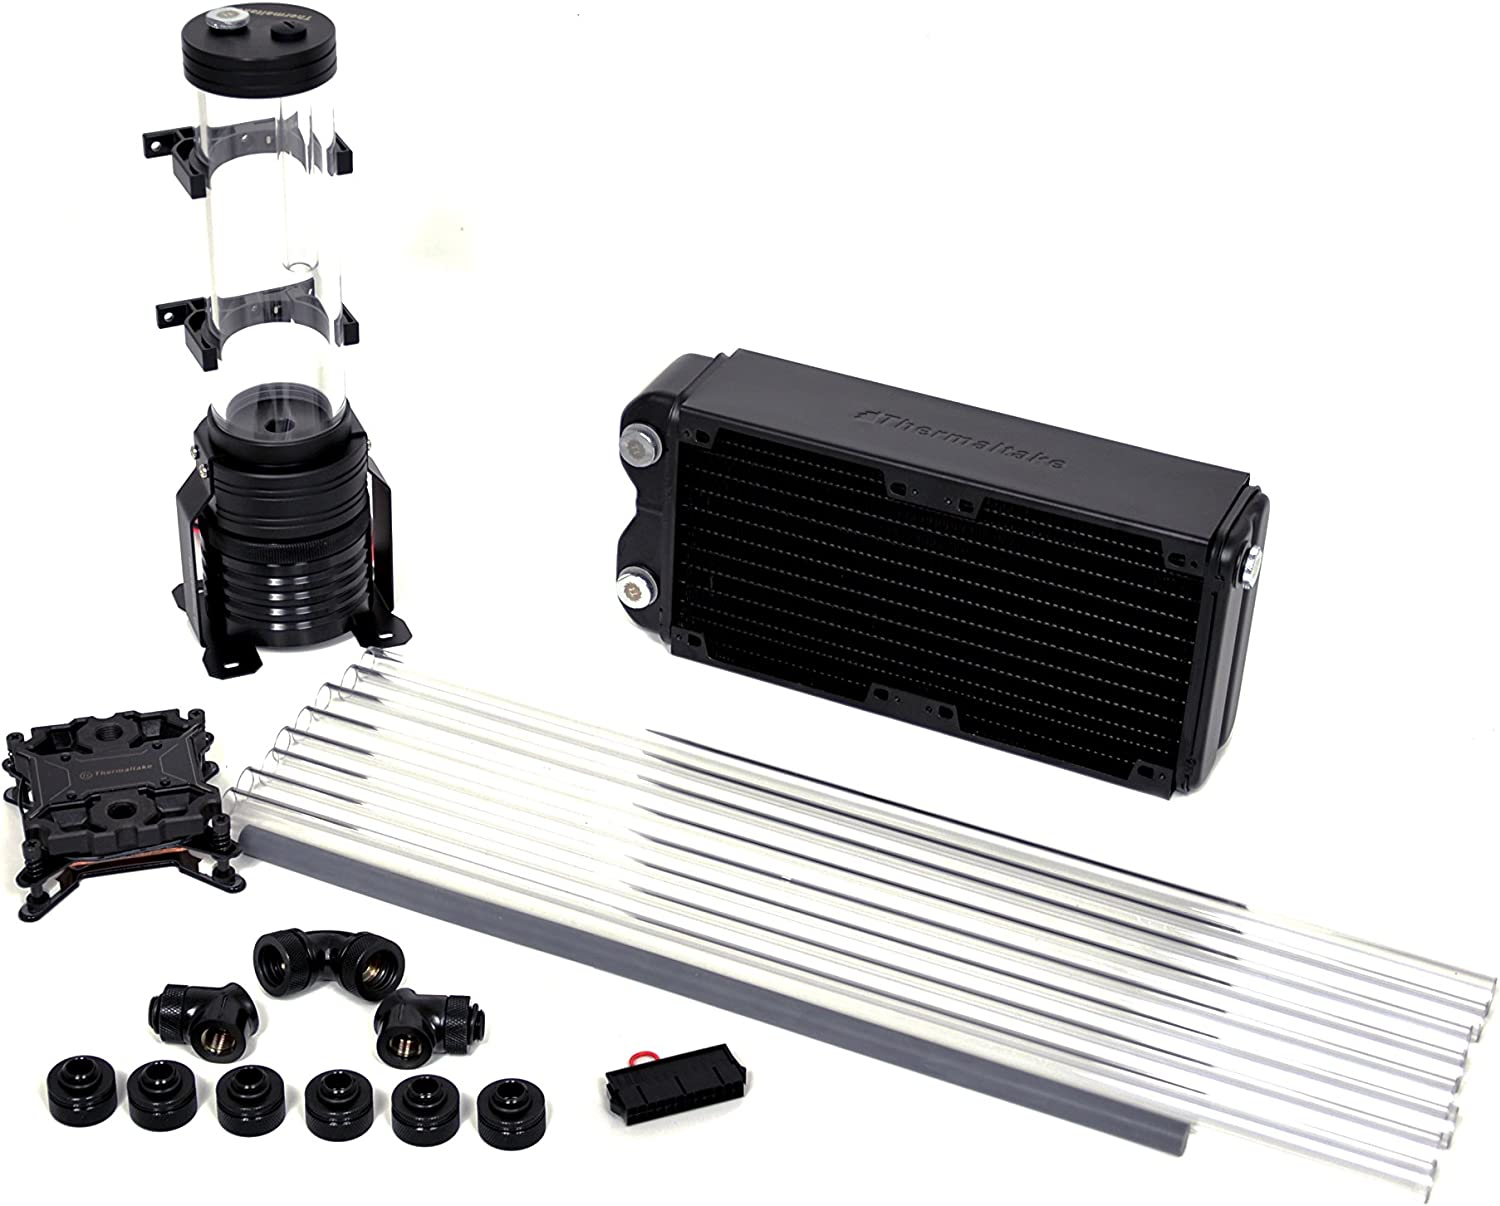 Thermaltake Pacific Reef 240 Performer D5 Res/Pump PETG Hard Tube Water Cooling Starter Kit CL-W119-CA12RE-A